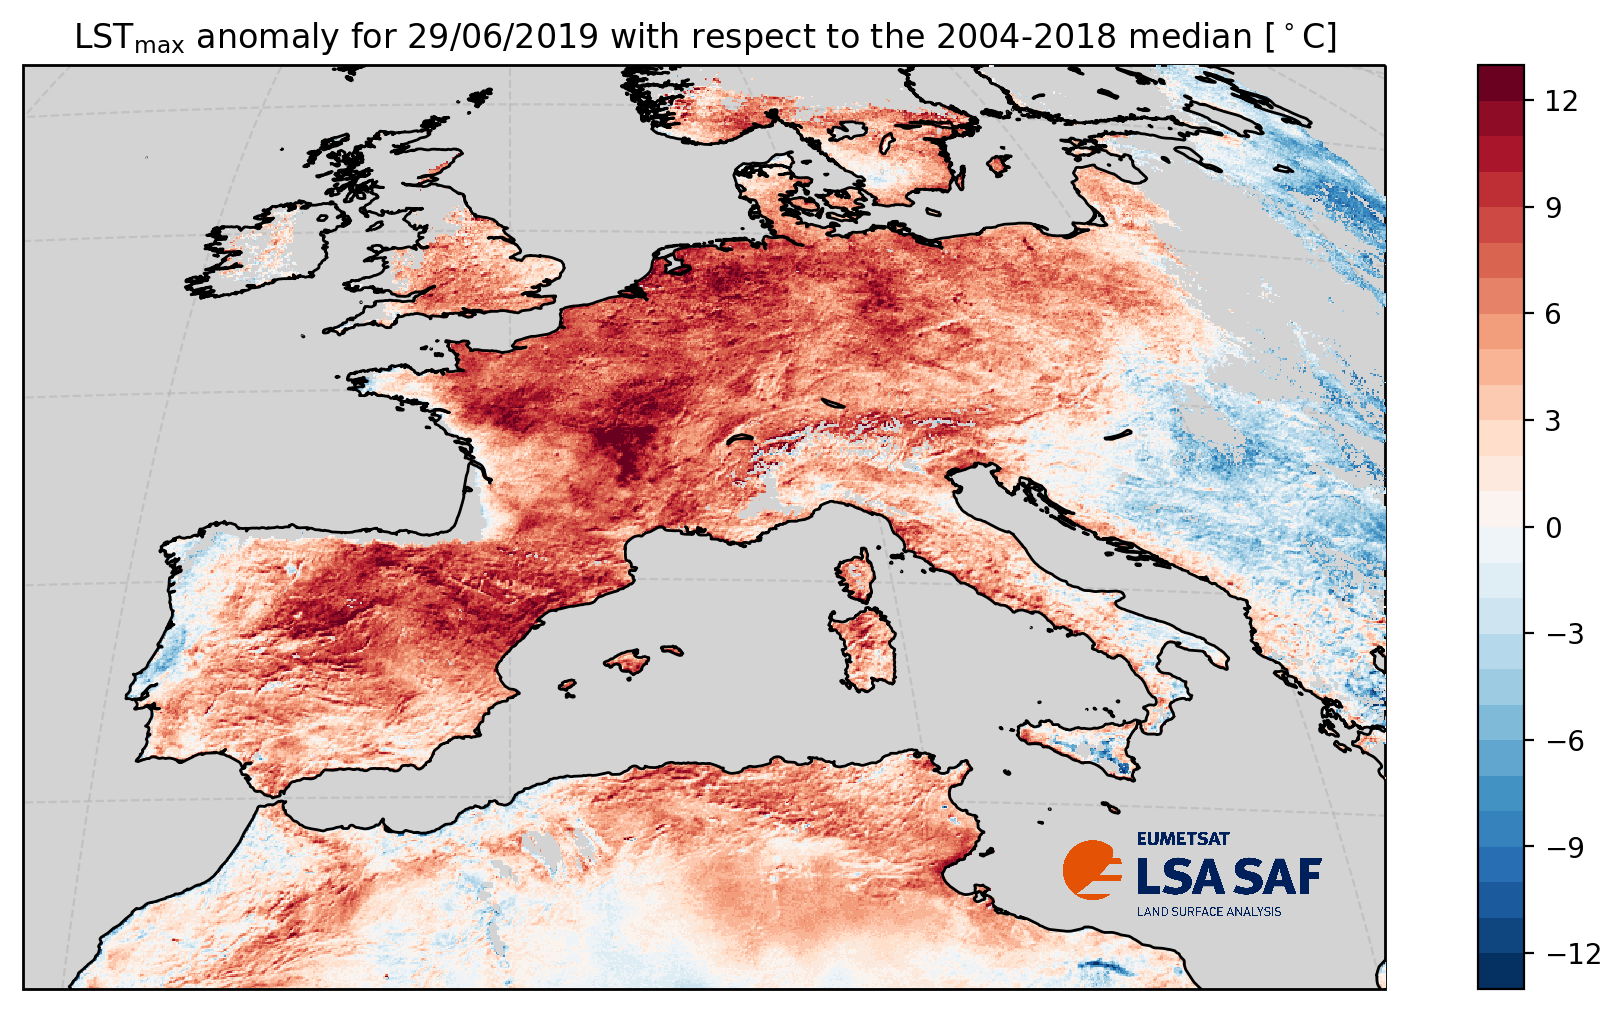 Daily maximum land surface temperature (LST) anomaly, 29 June